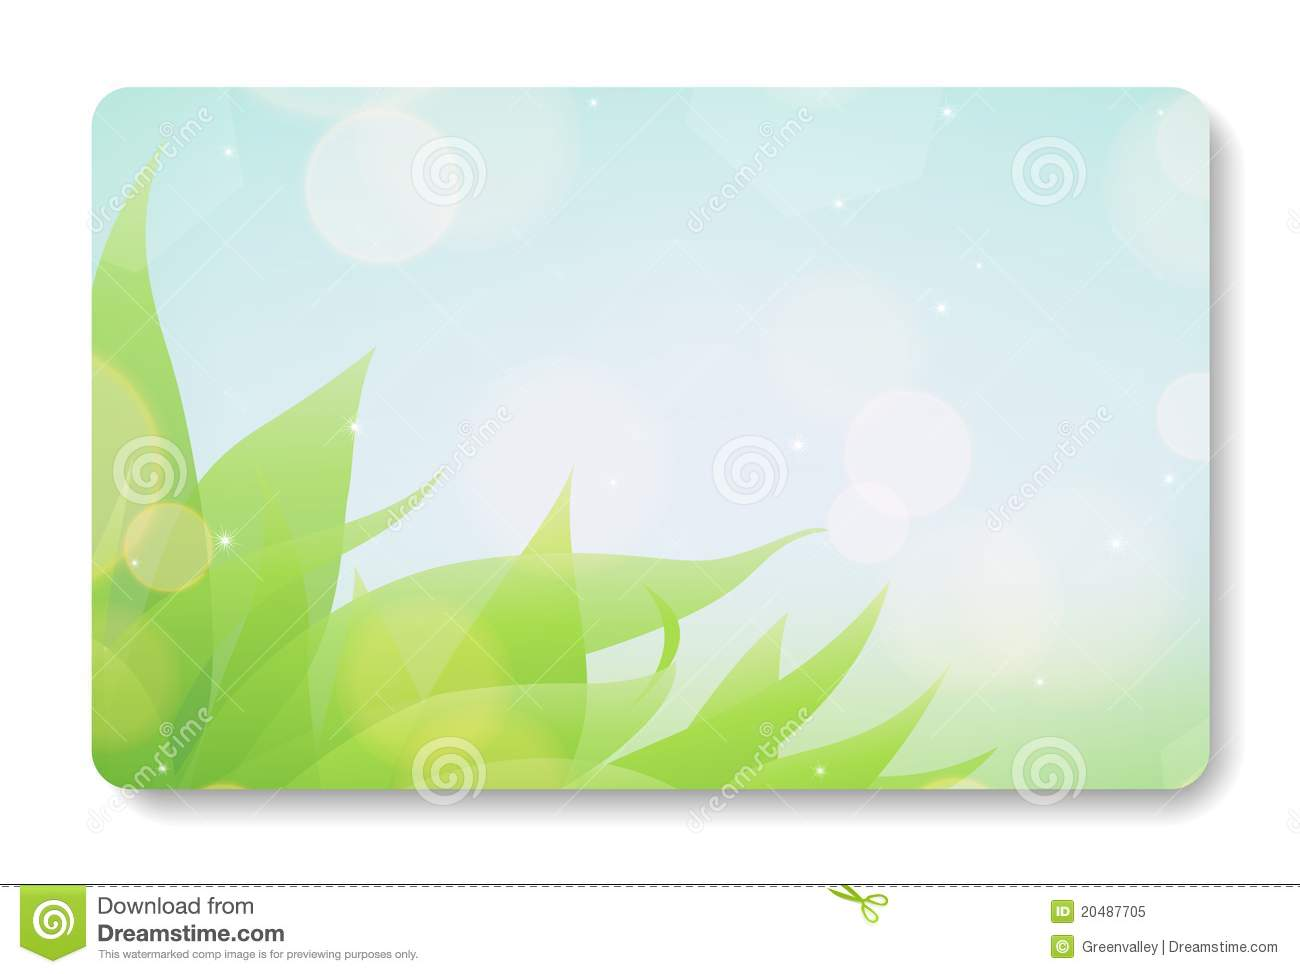 Business card background stock vector illustration of design 20487705 business card background fbccfo Images